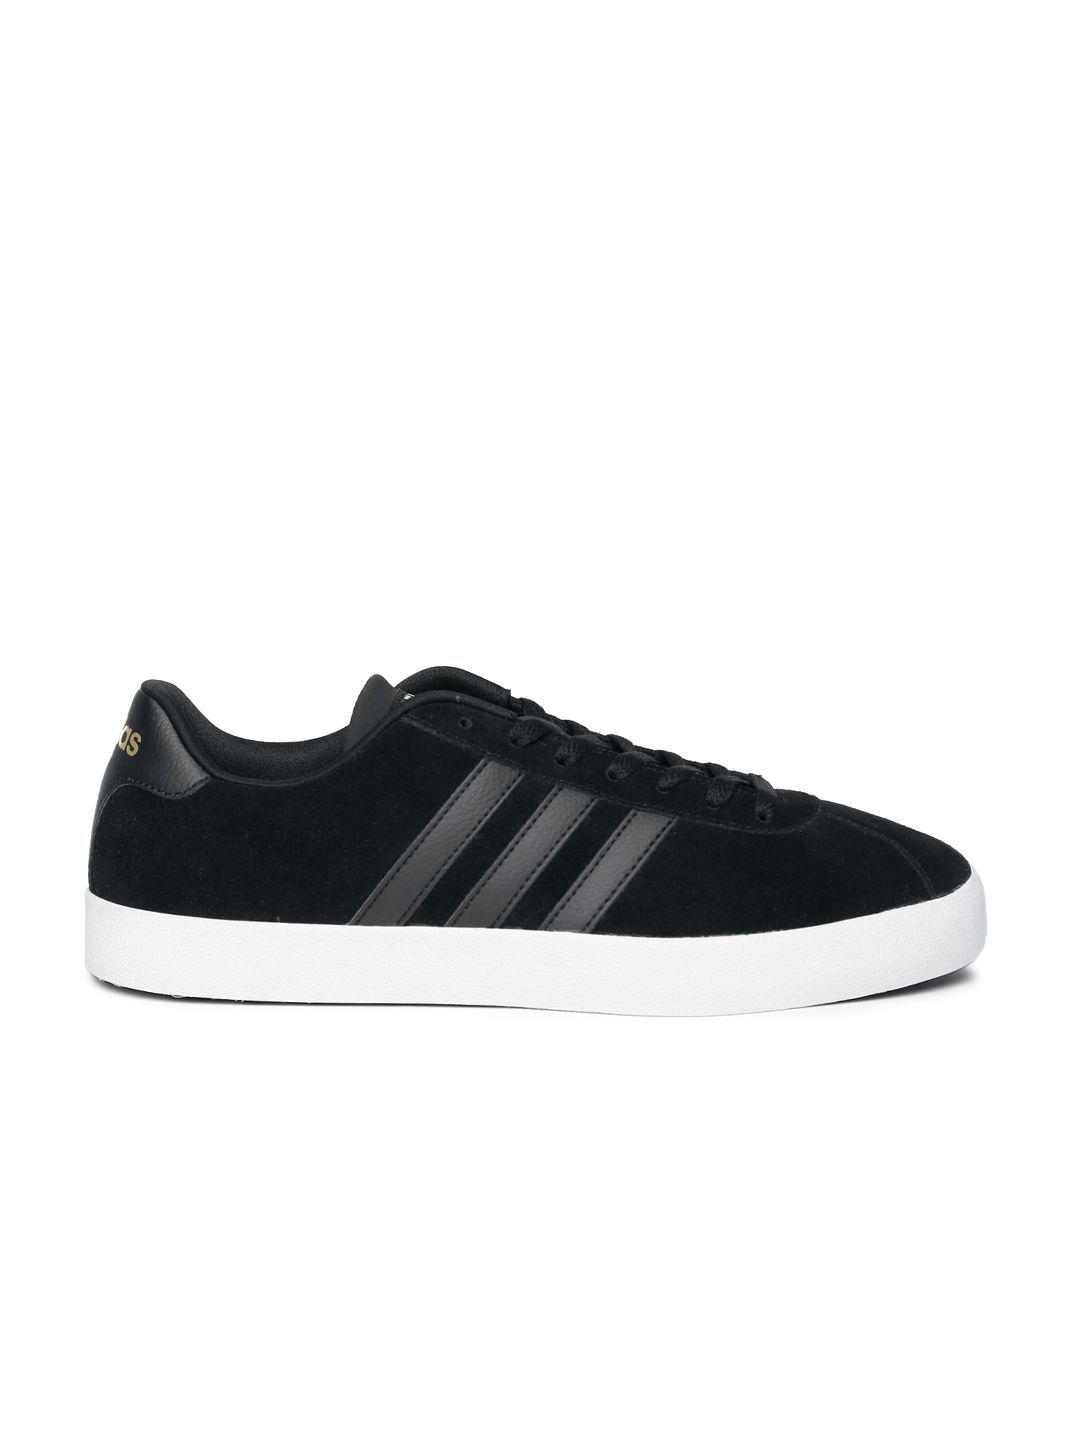 release info on best price large discount Adidas NEO Men Vlcourt Vulc Sneakers Black Casual Shoes